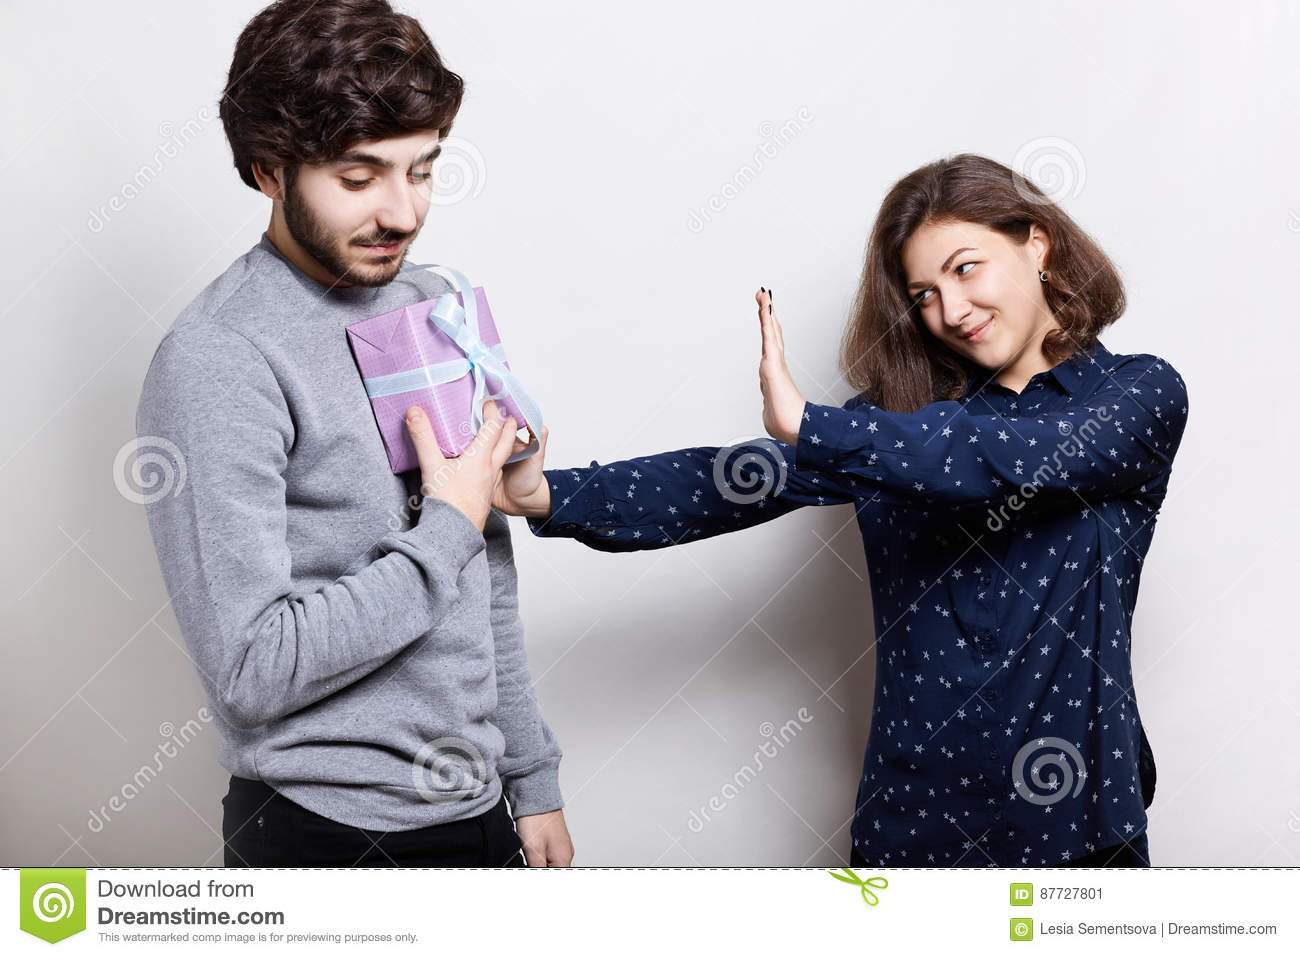 People And Relationships  Young Man Giving Offended Woman